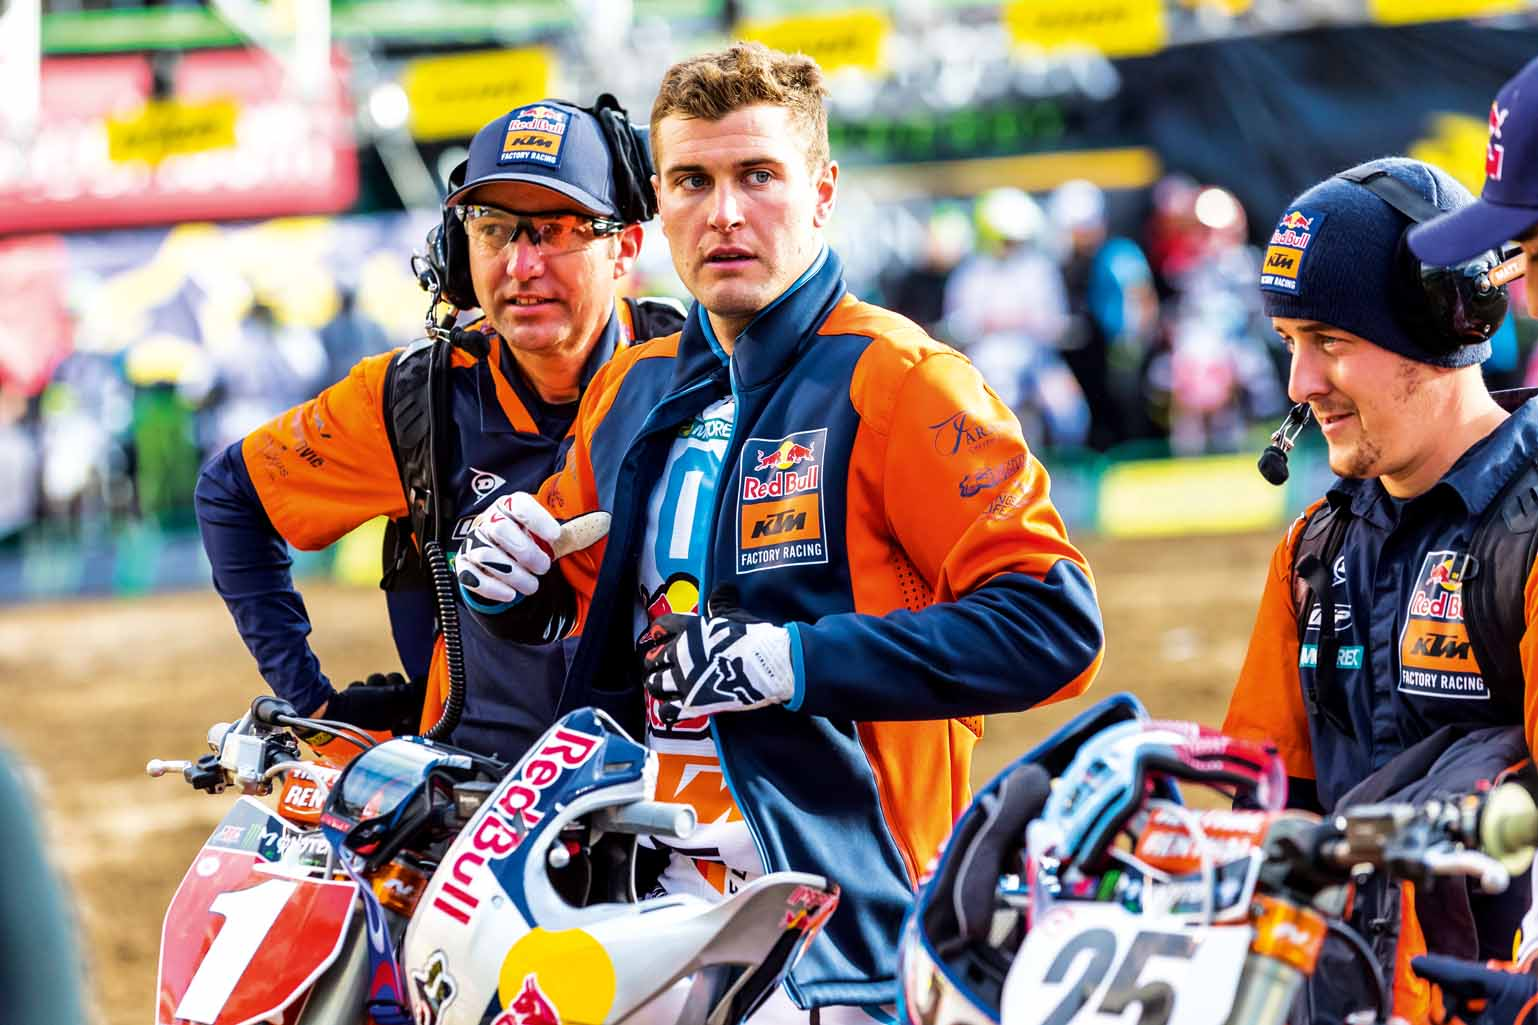 Ryan Dungey prepares to compete at Round Five of the 2017 AMA Supercross Series at the O.Co Coliseum in Oakland, California, USA on 4 February 2017. // Garth Milan/Red Bull Content Pool // P-20170206-02472 // Usage for editorial use only // Please go to www.redbullcontentpool.com for further information. //